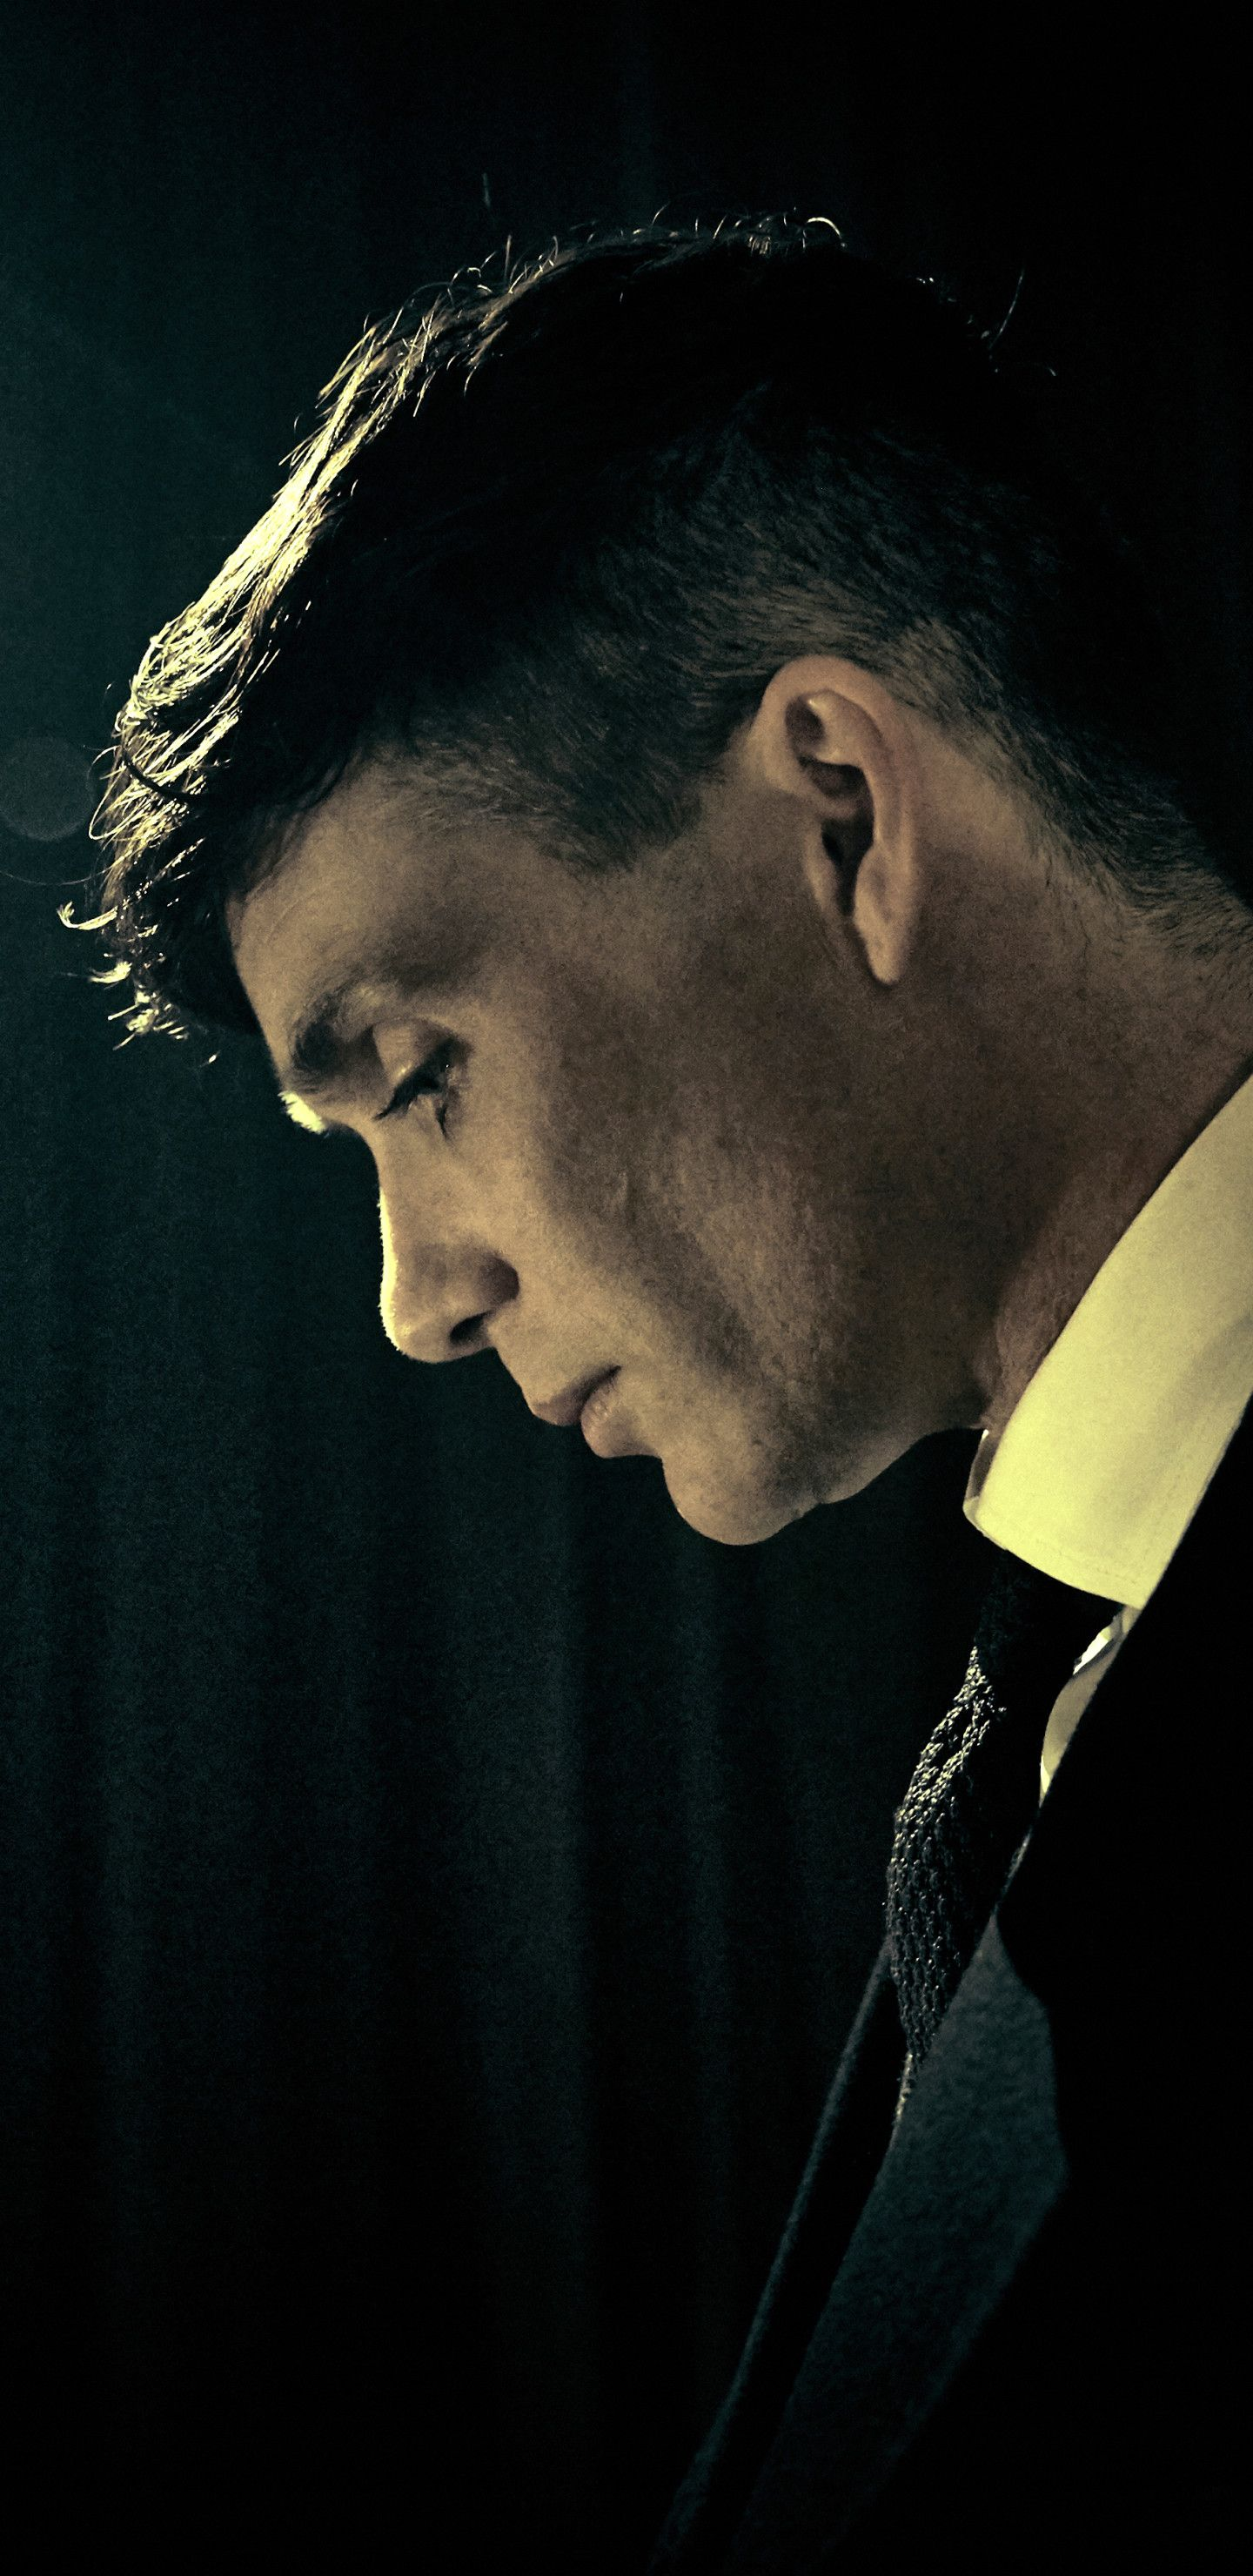 1440x2960 TV Show Peaky Blinders. Wallpaper 705589 (With